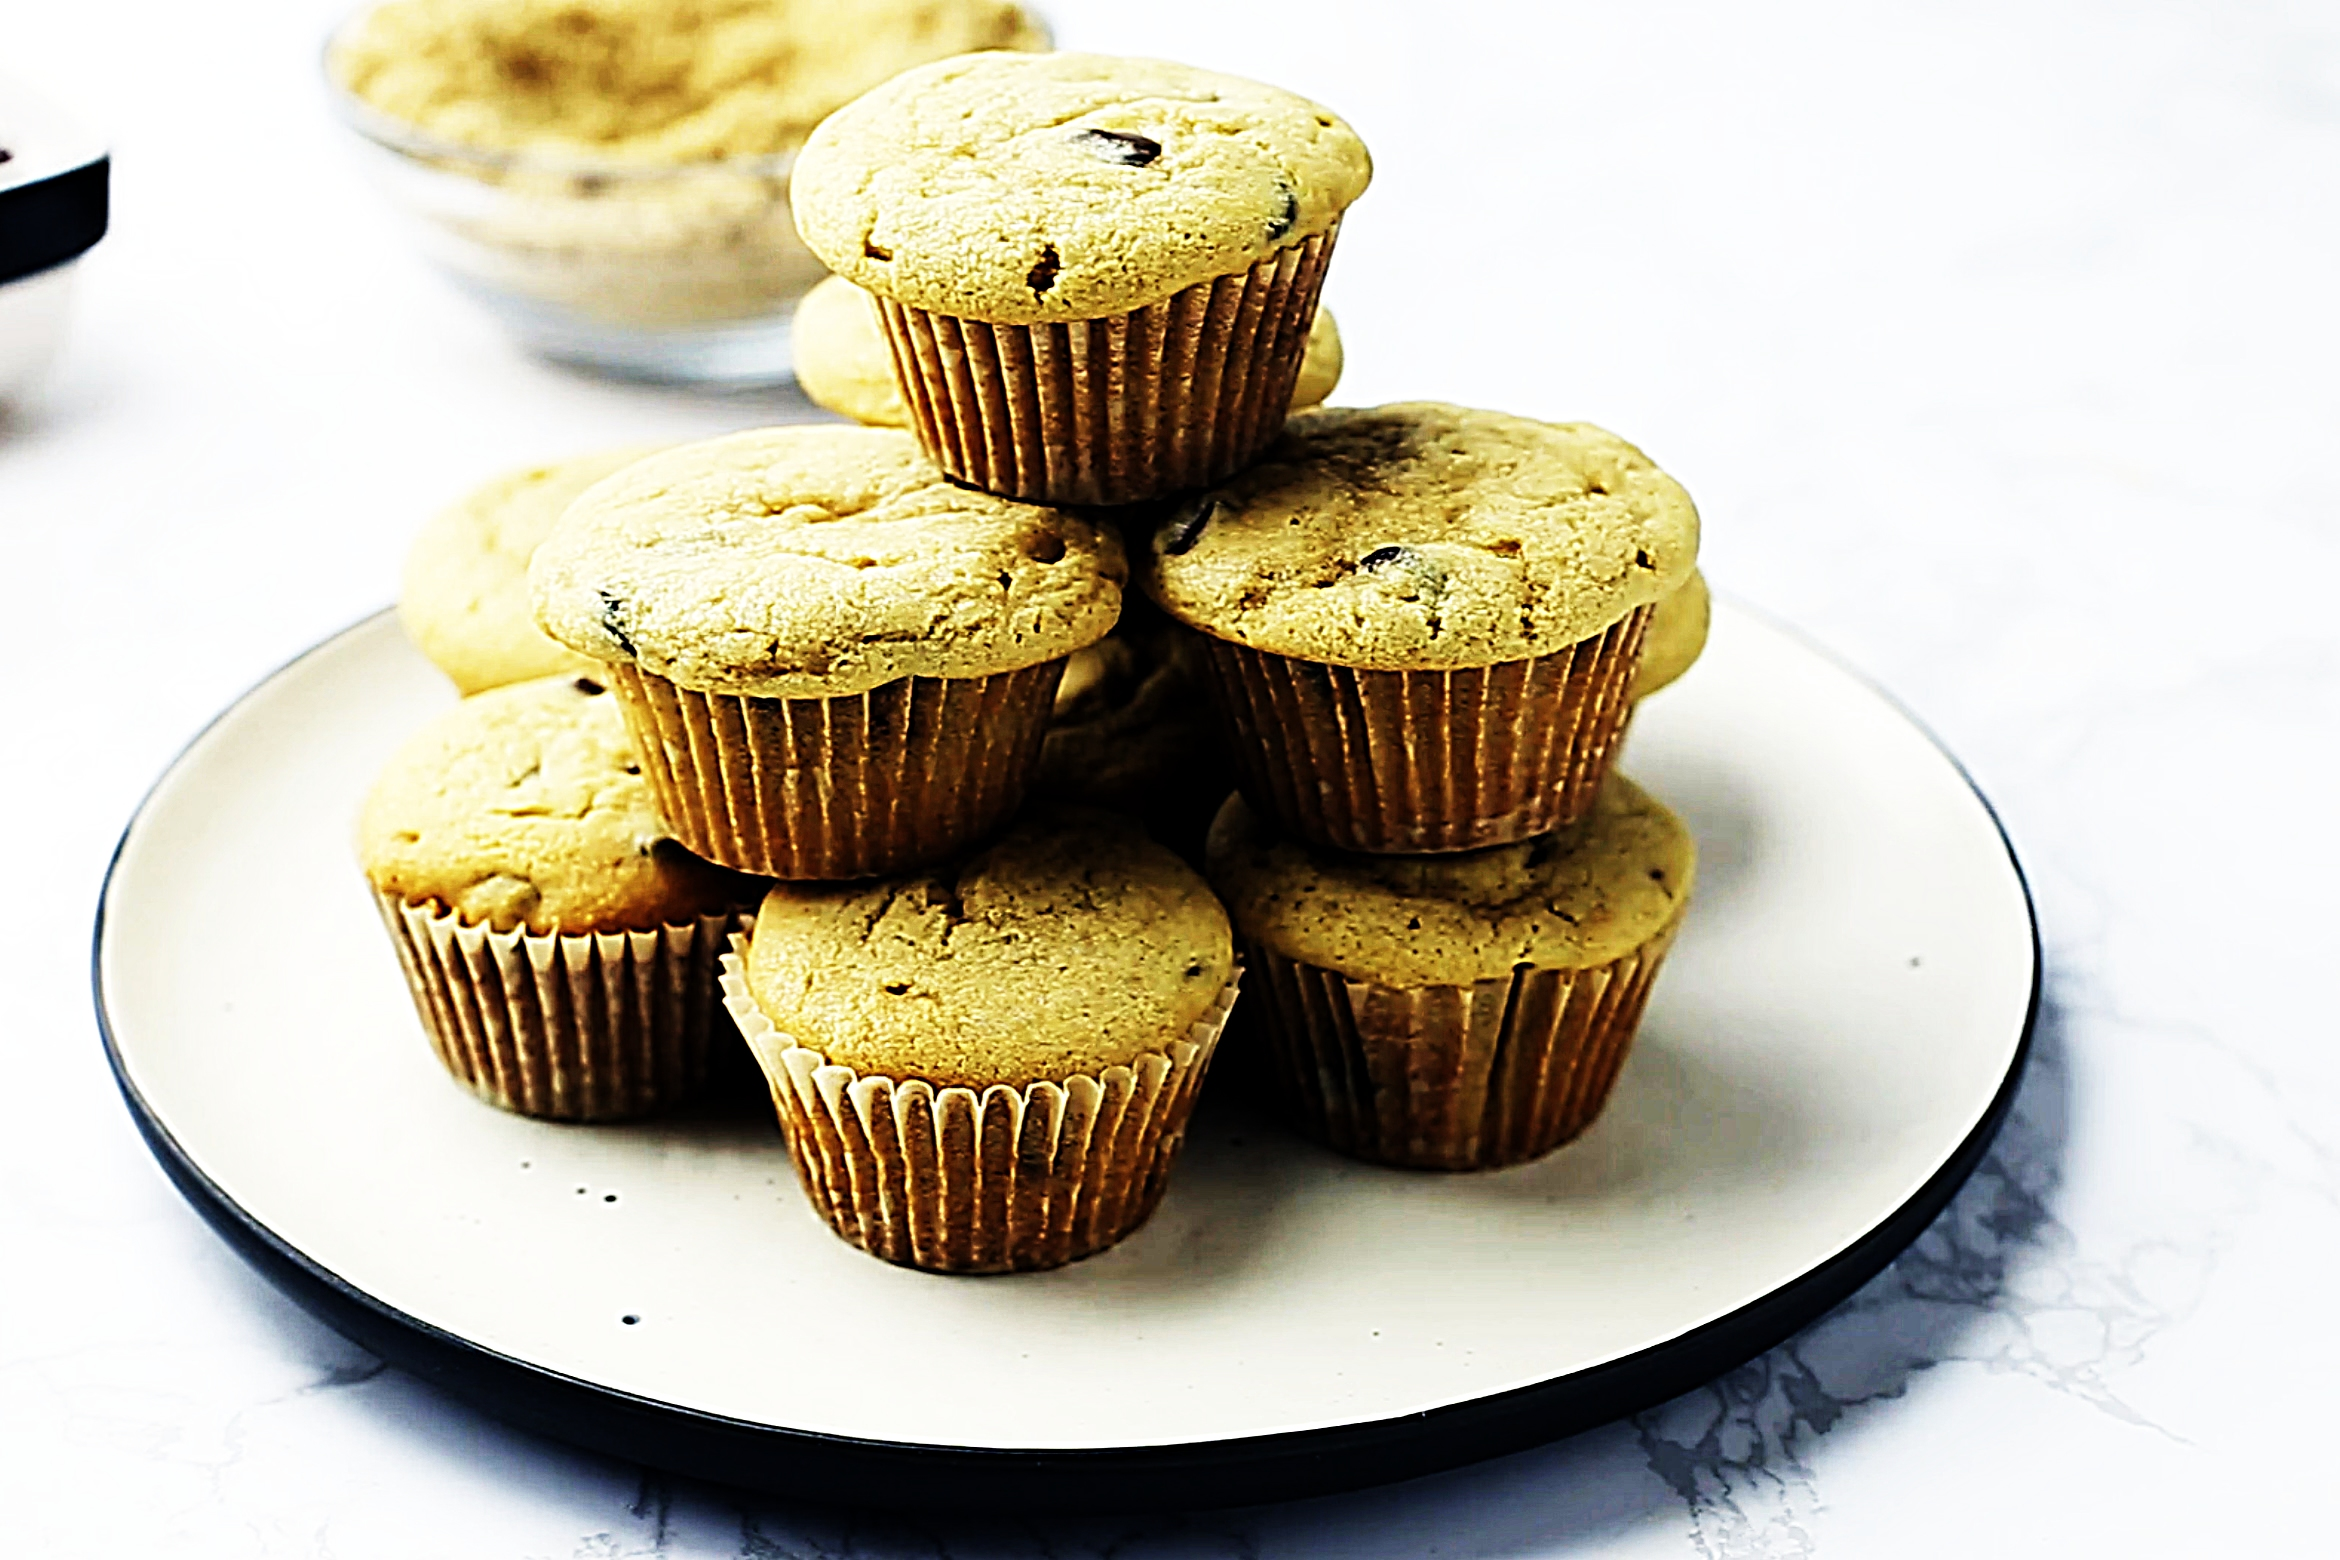 Stupid-Easy Recipe for Best Ever Chocolate Chip Muffins (#1 Top-Rated)